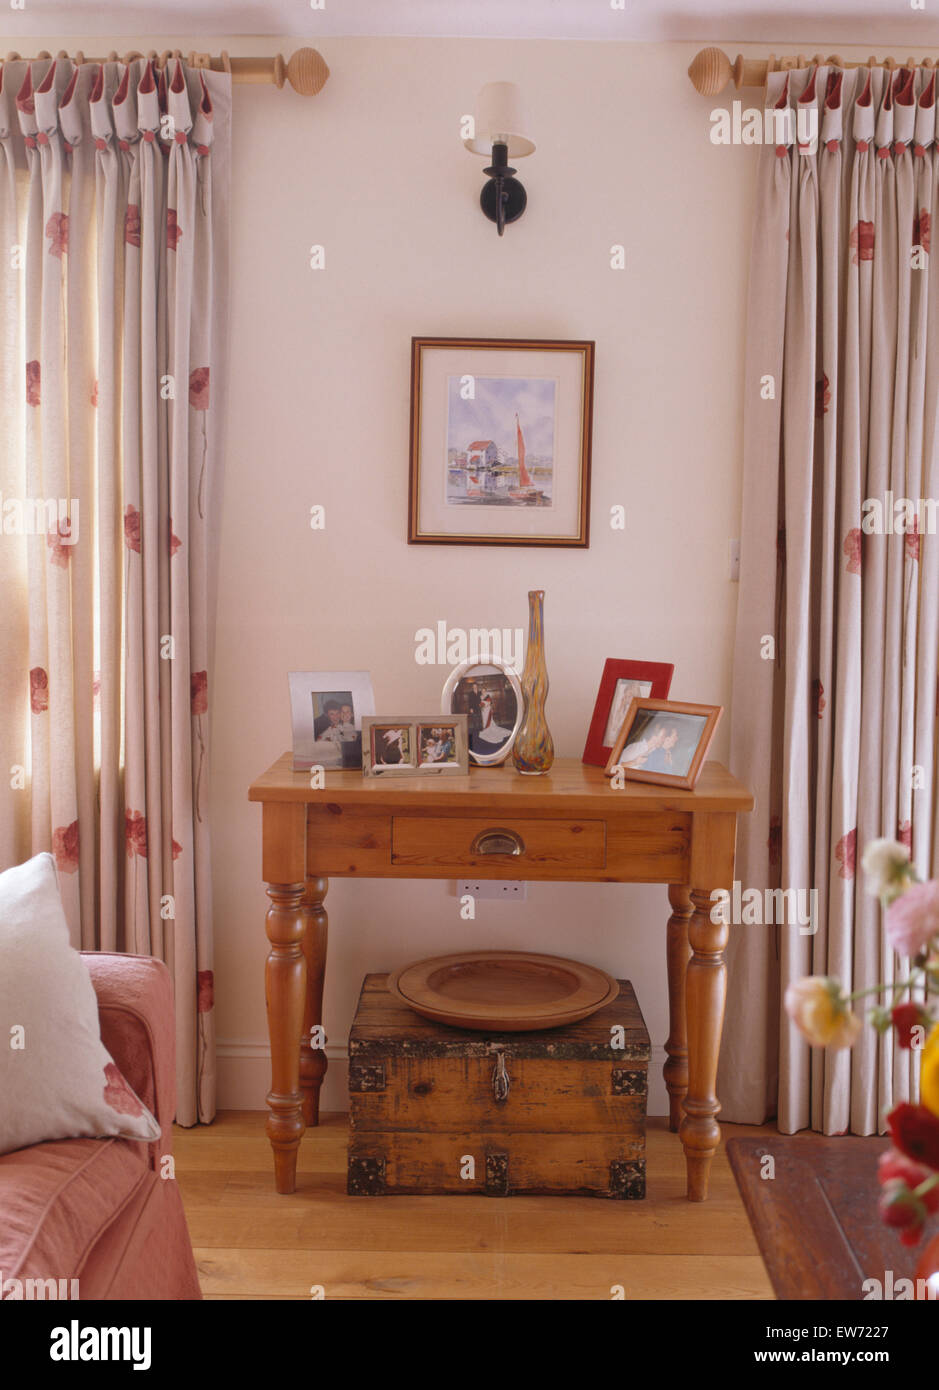 Red patterned curtains living room - Old Wooden Box Below Small Pine Table Between Windows With Red Patterned White Curtains In Country Living Room